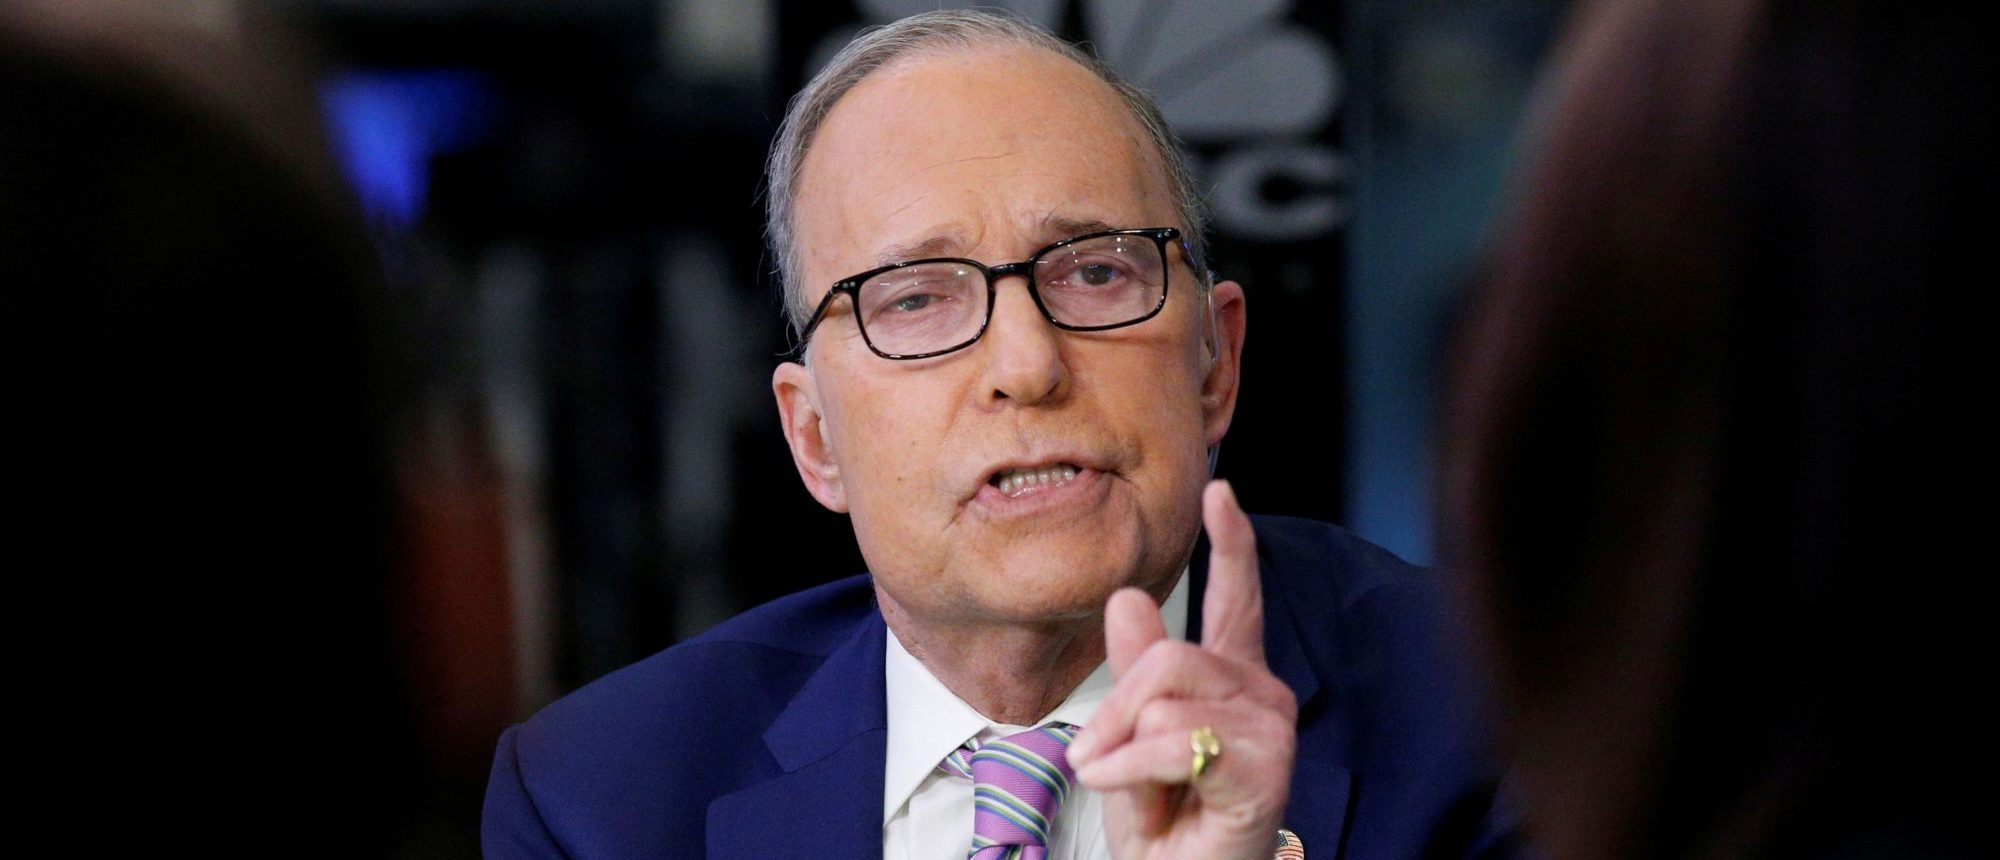 """Economic analyst Lawrence """"Larry"""" Kudlow appears on CNBC at the New York Stock Exchange, (NYSE) in New York, March 7, 2018. REUTERS/Brendan McDermid/File Photo"""